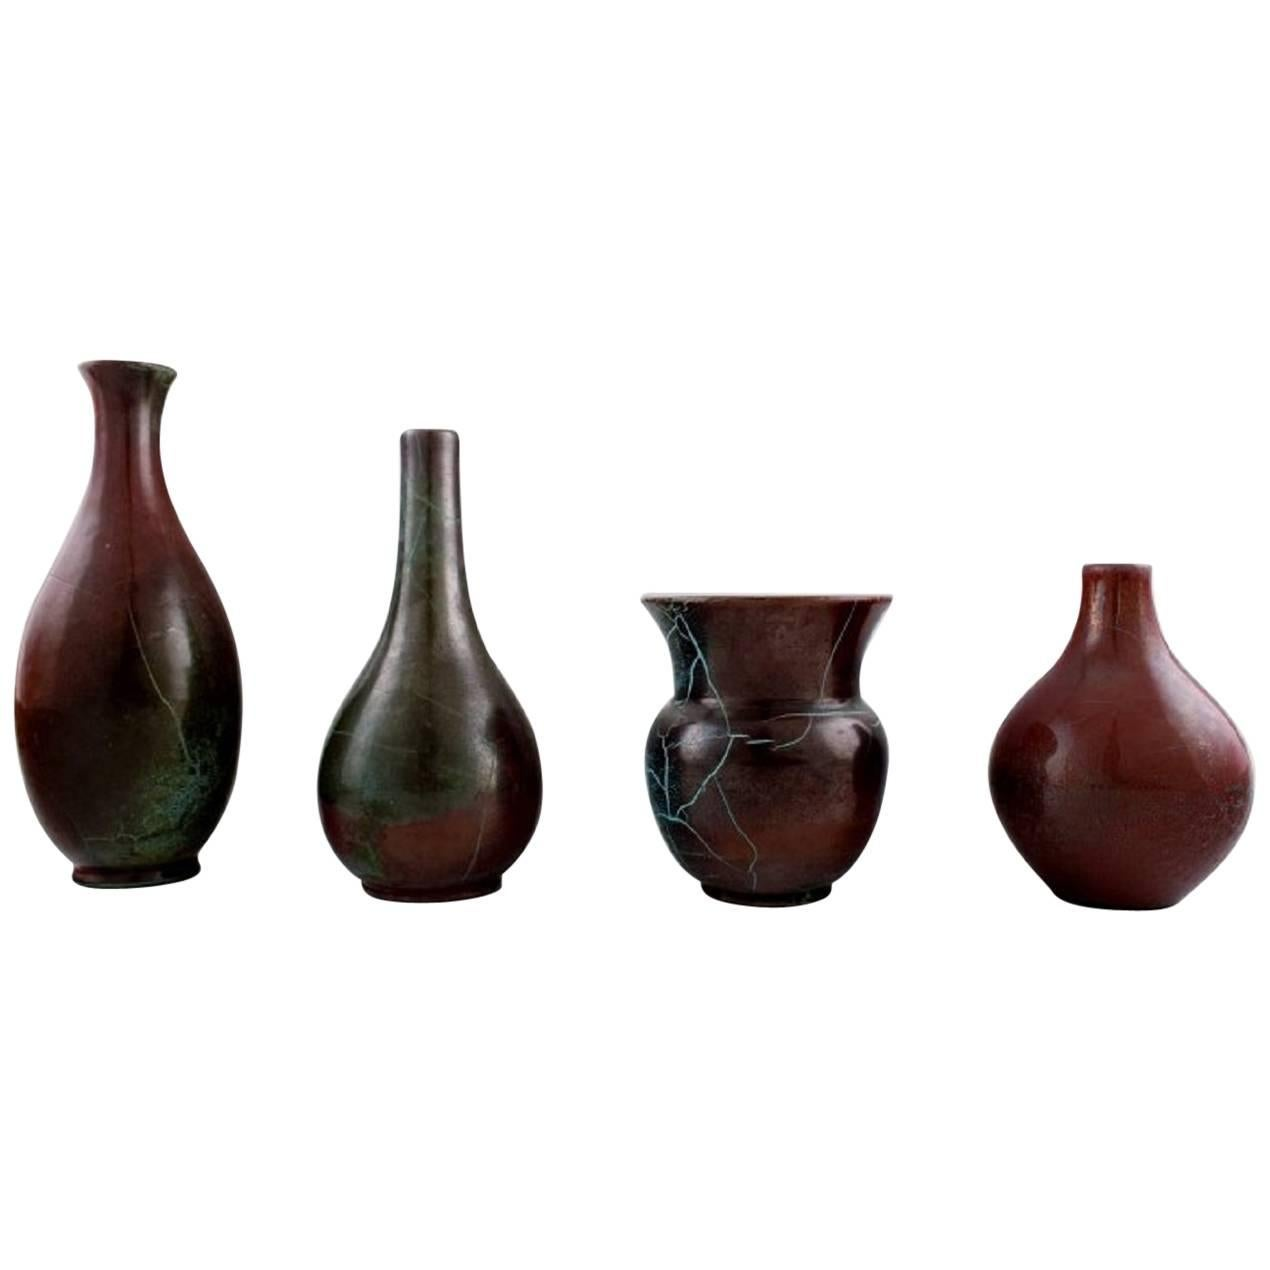 Richard Uhlemeyer, German Ceramist, Four Ceramic Vases, Beautiful Glaze